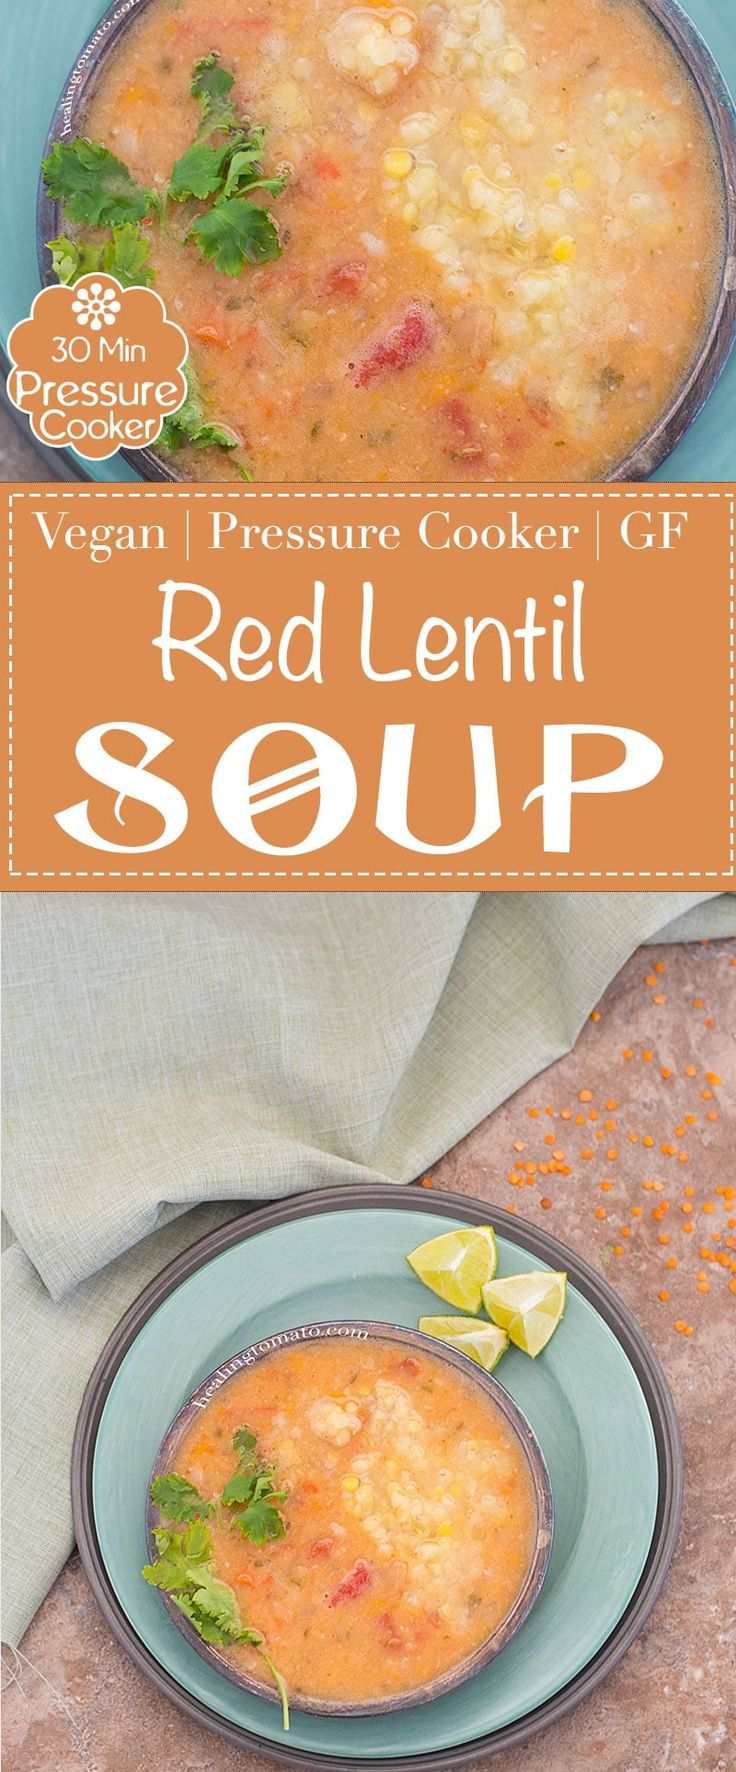 Red Lentil Soup is really easy to make in a pressure cooker. Dump all your leftover vegetables into it along with red lentils and pressure cook them for 20 minutes. Its the easiest one-pot recipe to make and very little cleanup required